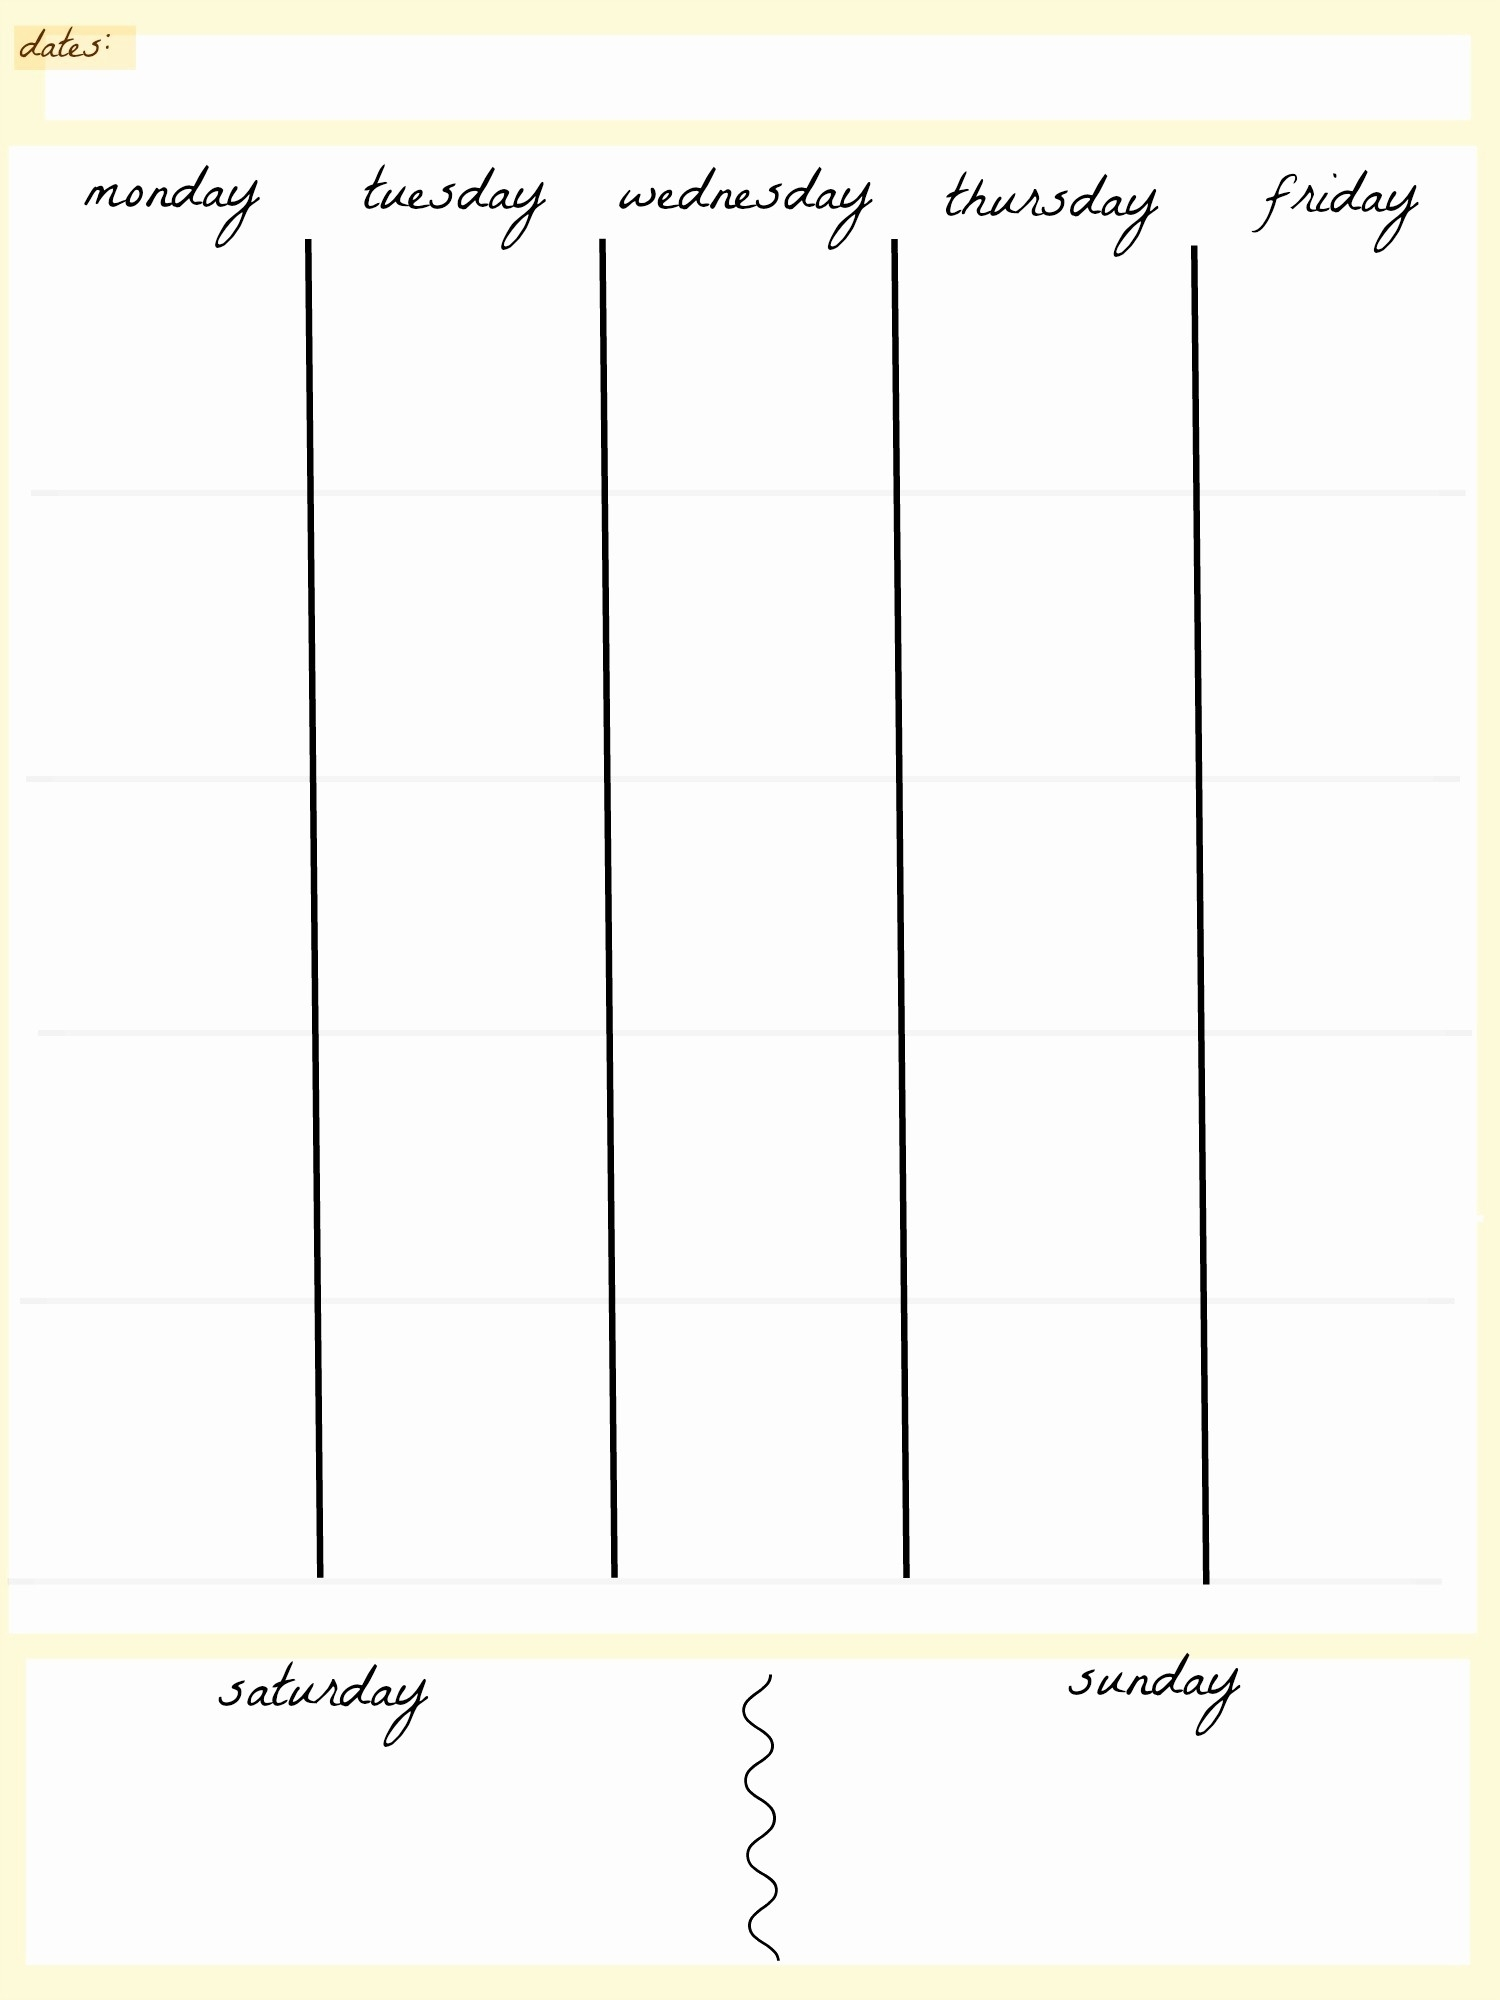 5 Day Calendar Template Word Elegant 5 Day Work Week Monthly